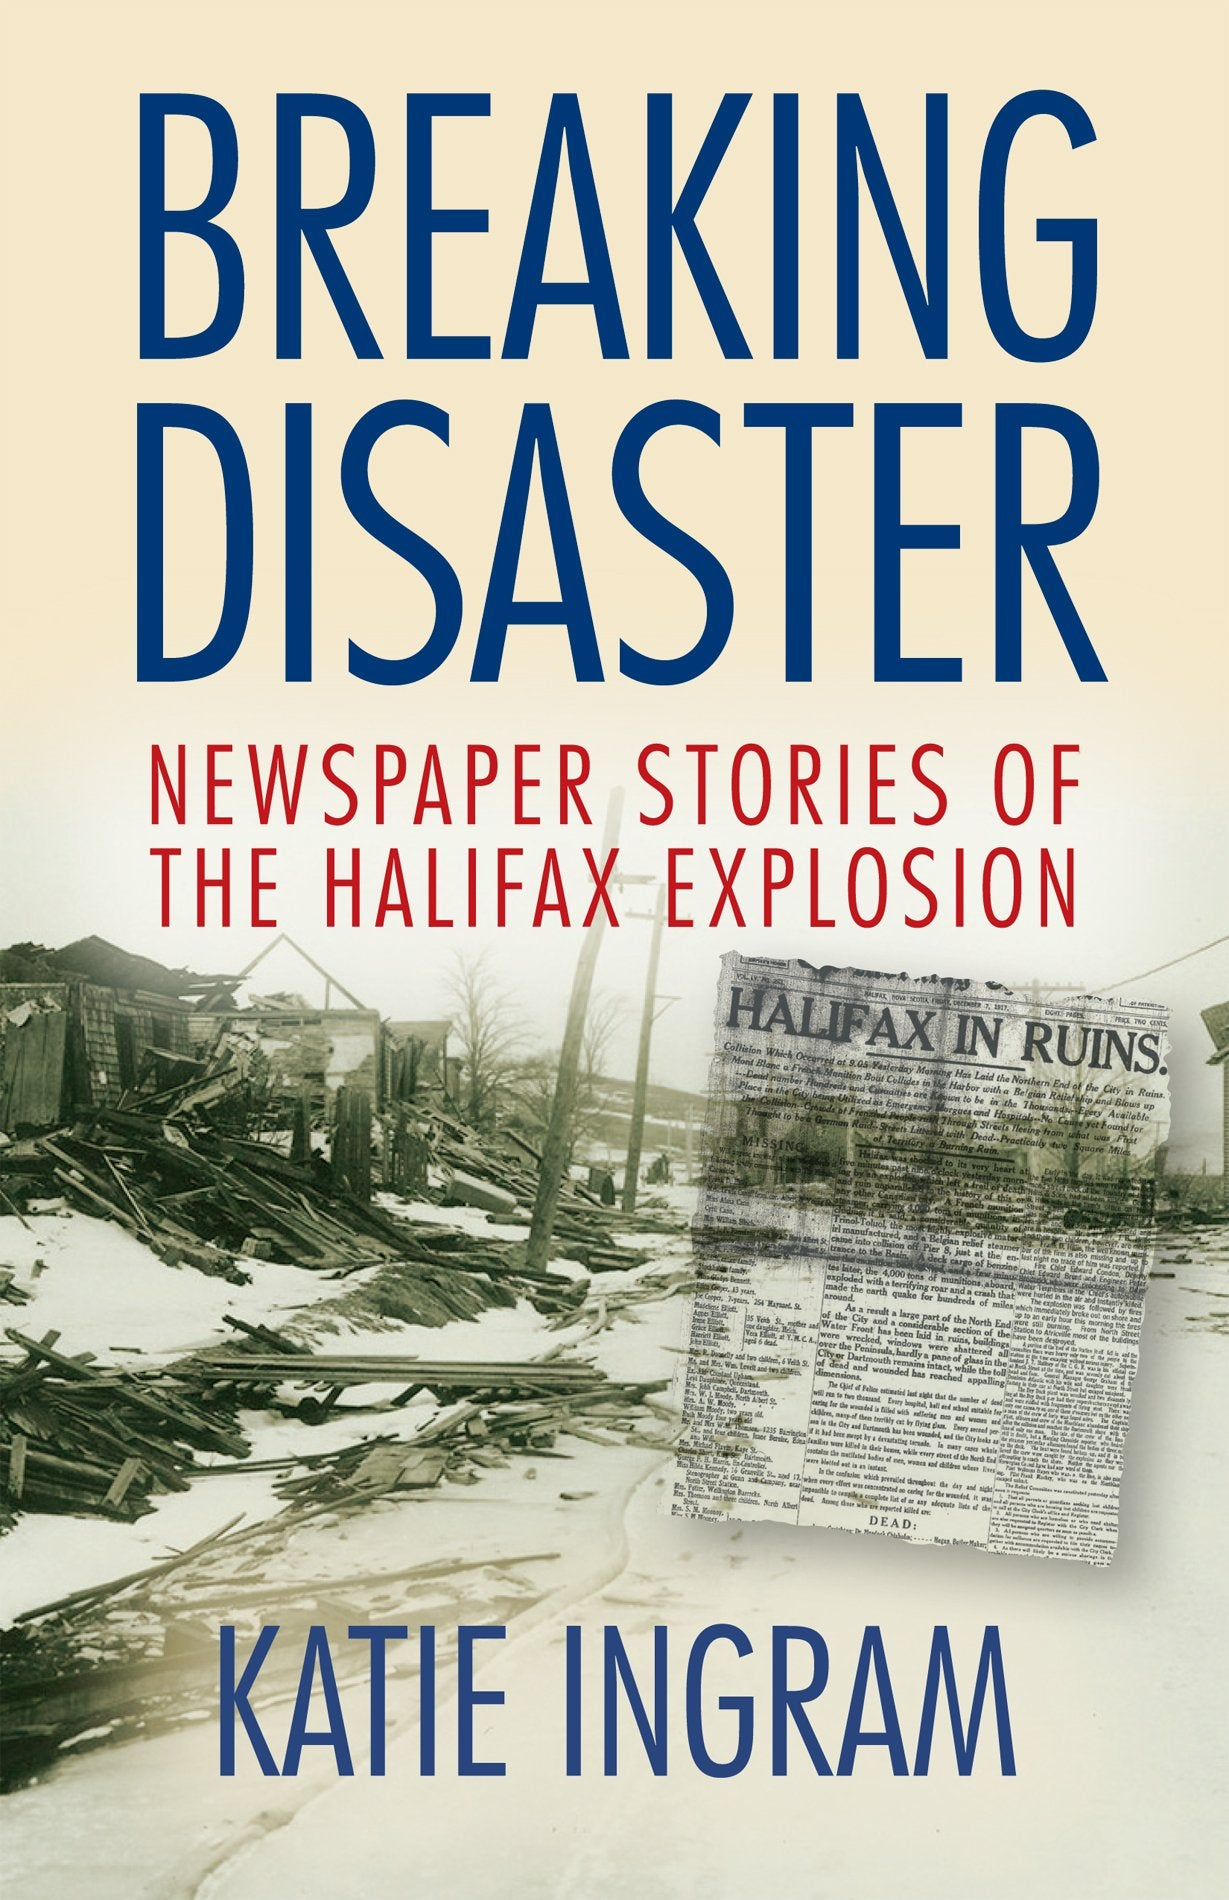 Breaking Disaster: Newspaper Stories of the Halifax Explosion